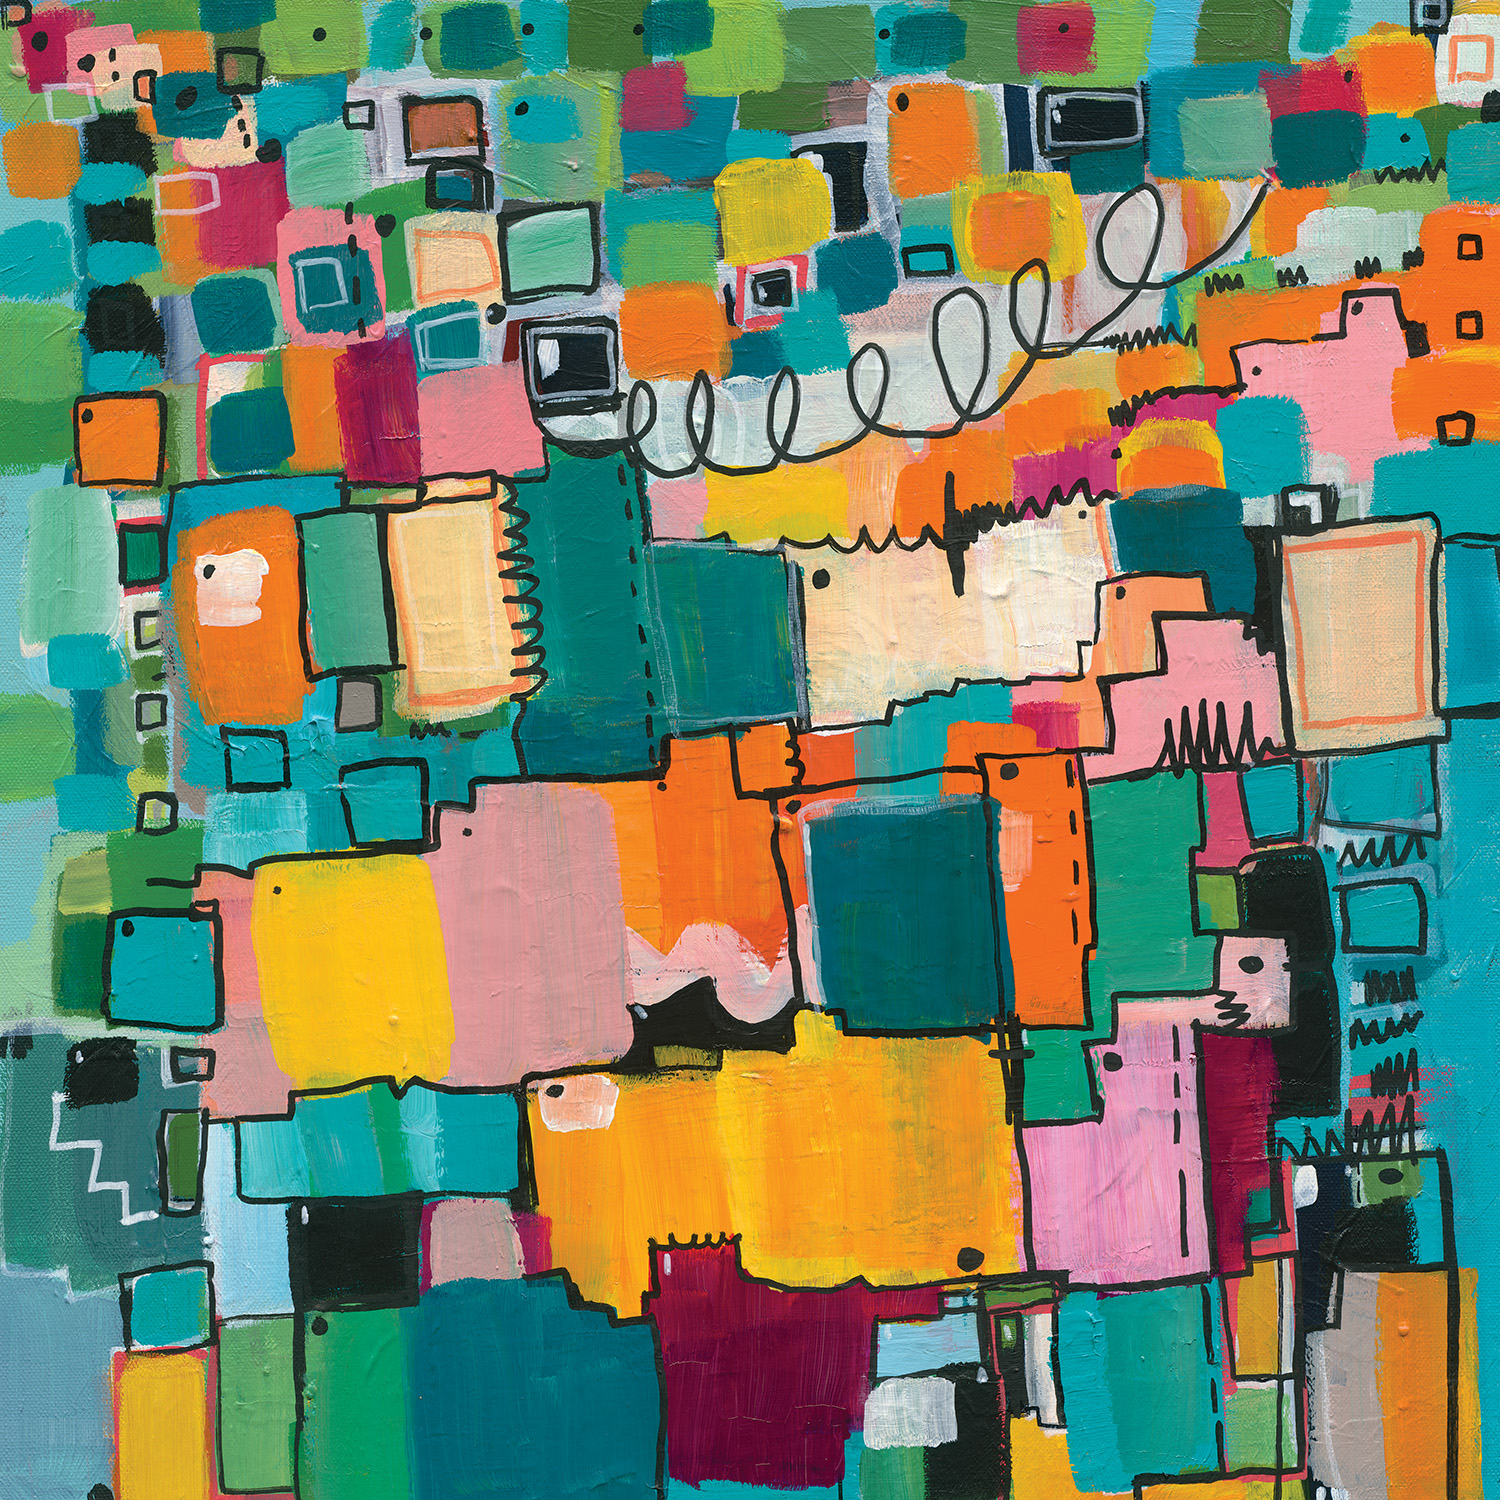 Abstract image with square and linear shapes in teal, blue, yellow, orange, pink, white and black